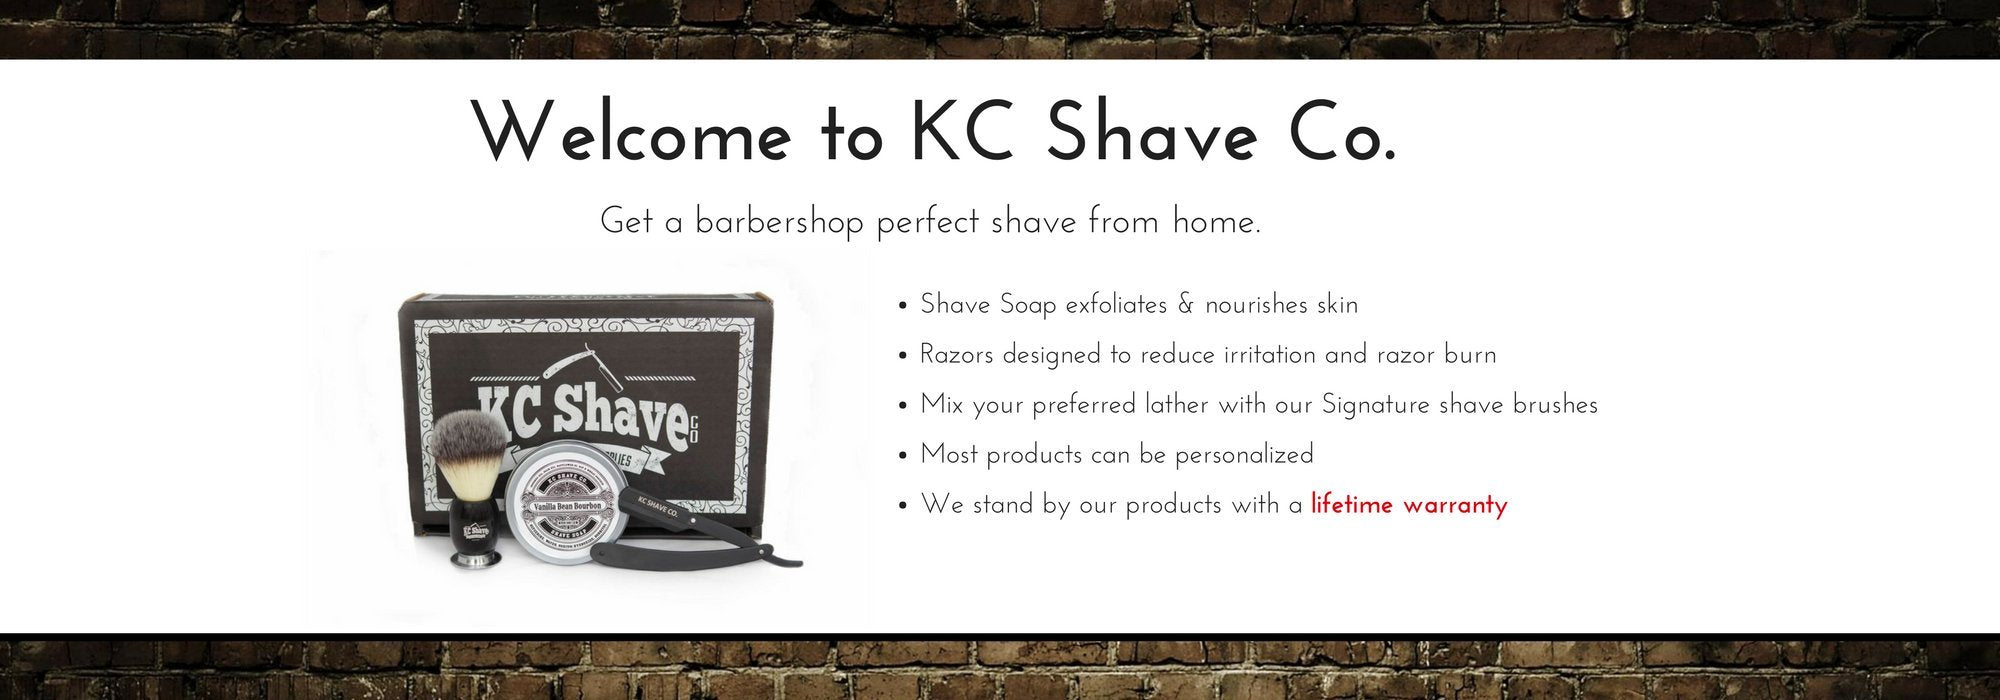 Welcome to KC Shave Co.  We offer the best straight razor kit in the world.